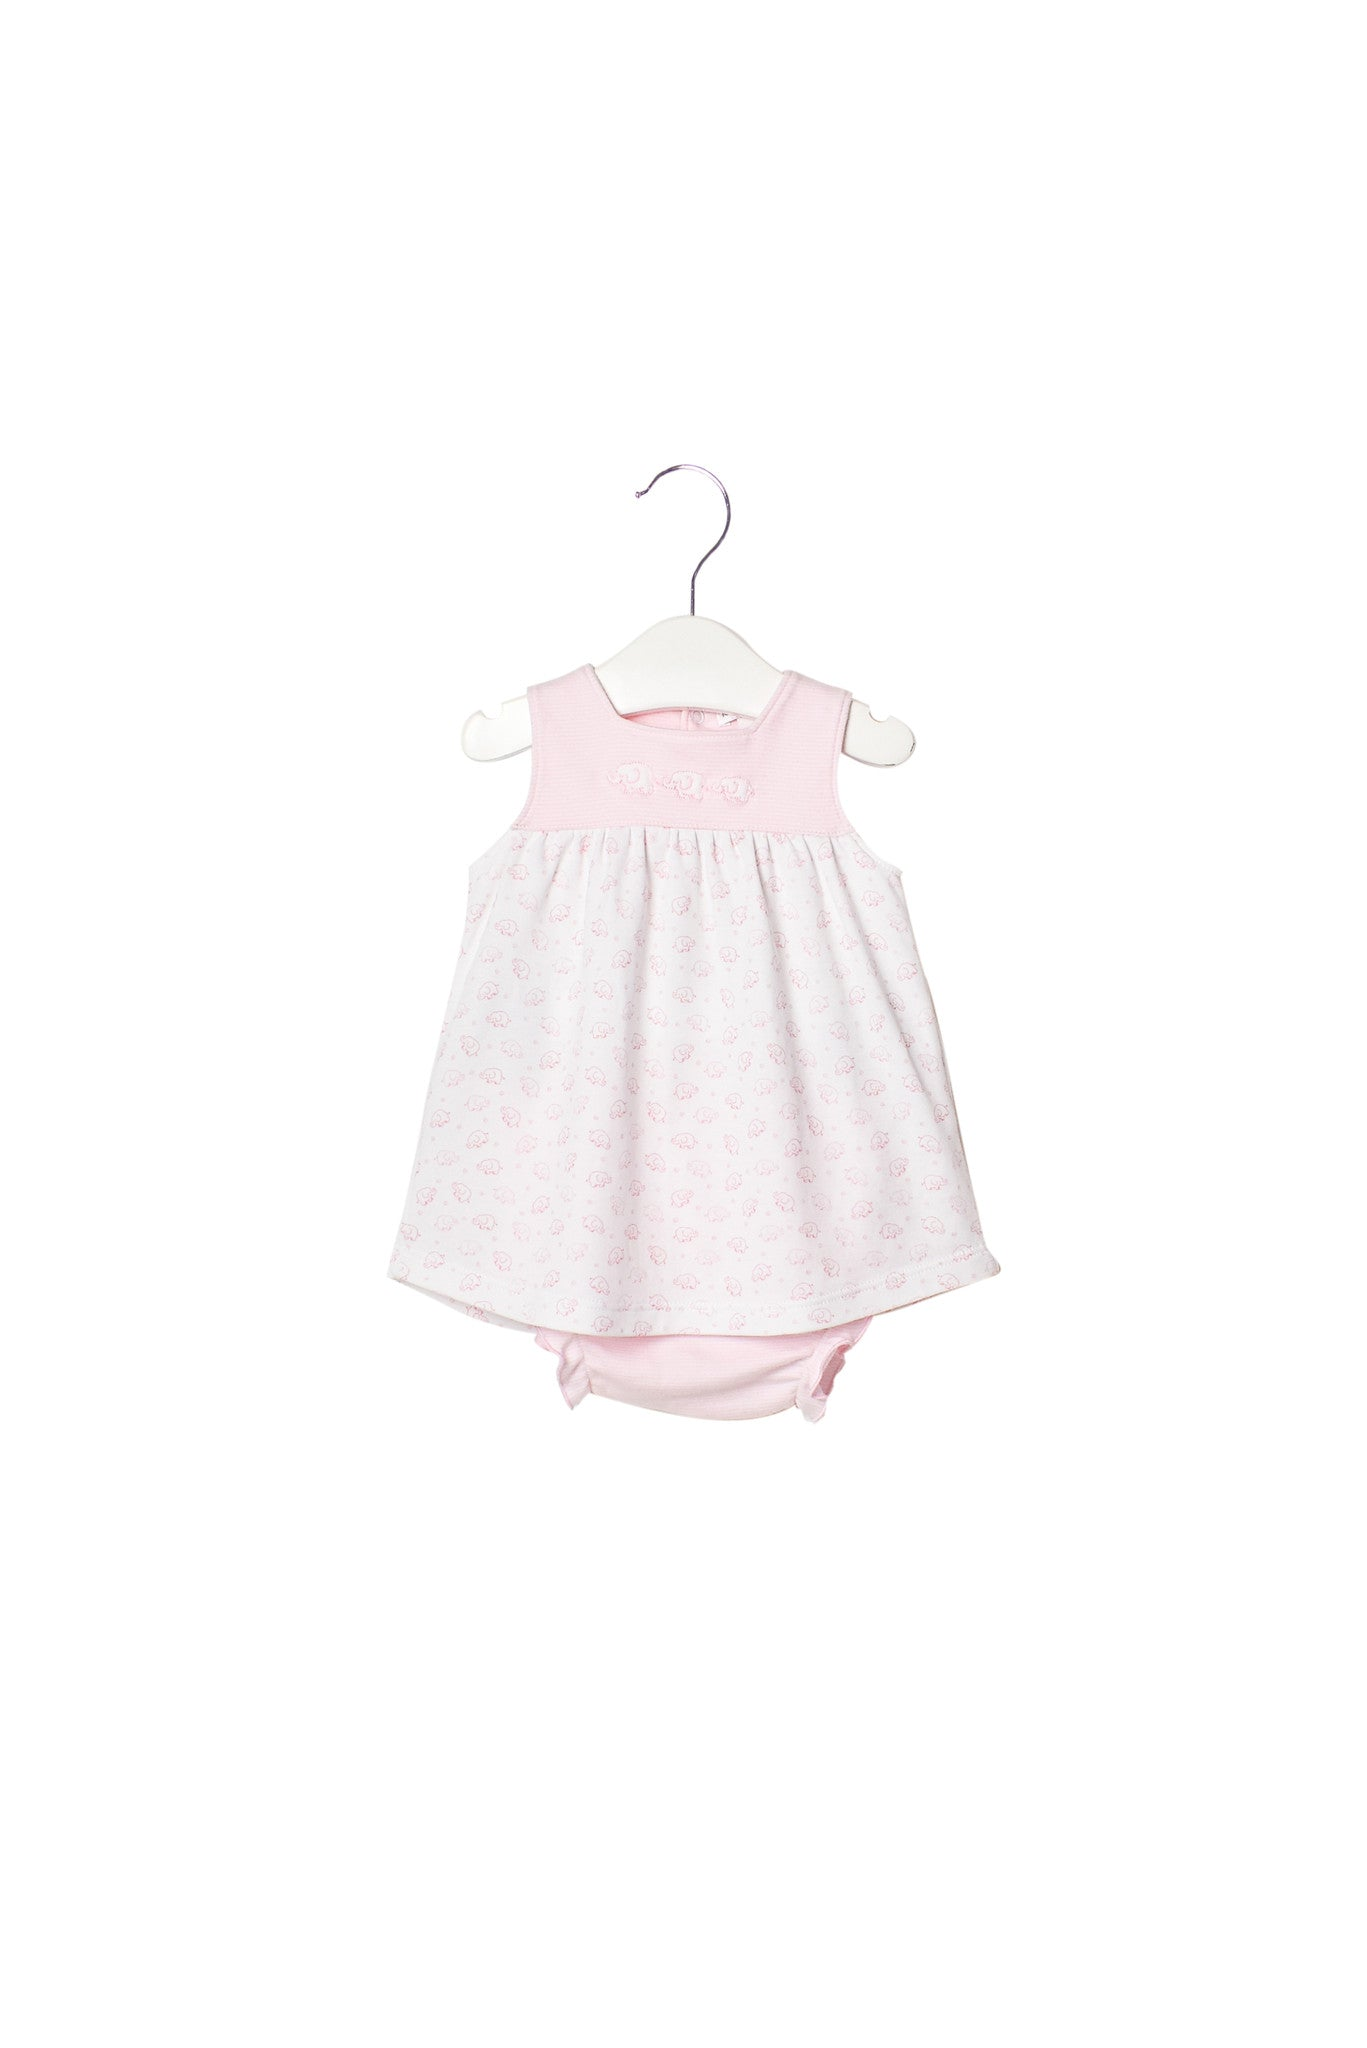 10003554 Kissy Kissy Baby~Dress and Bloomer 0-3M at Retykle